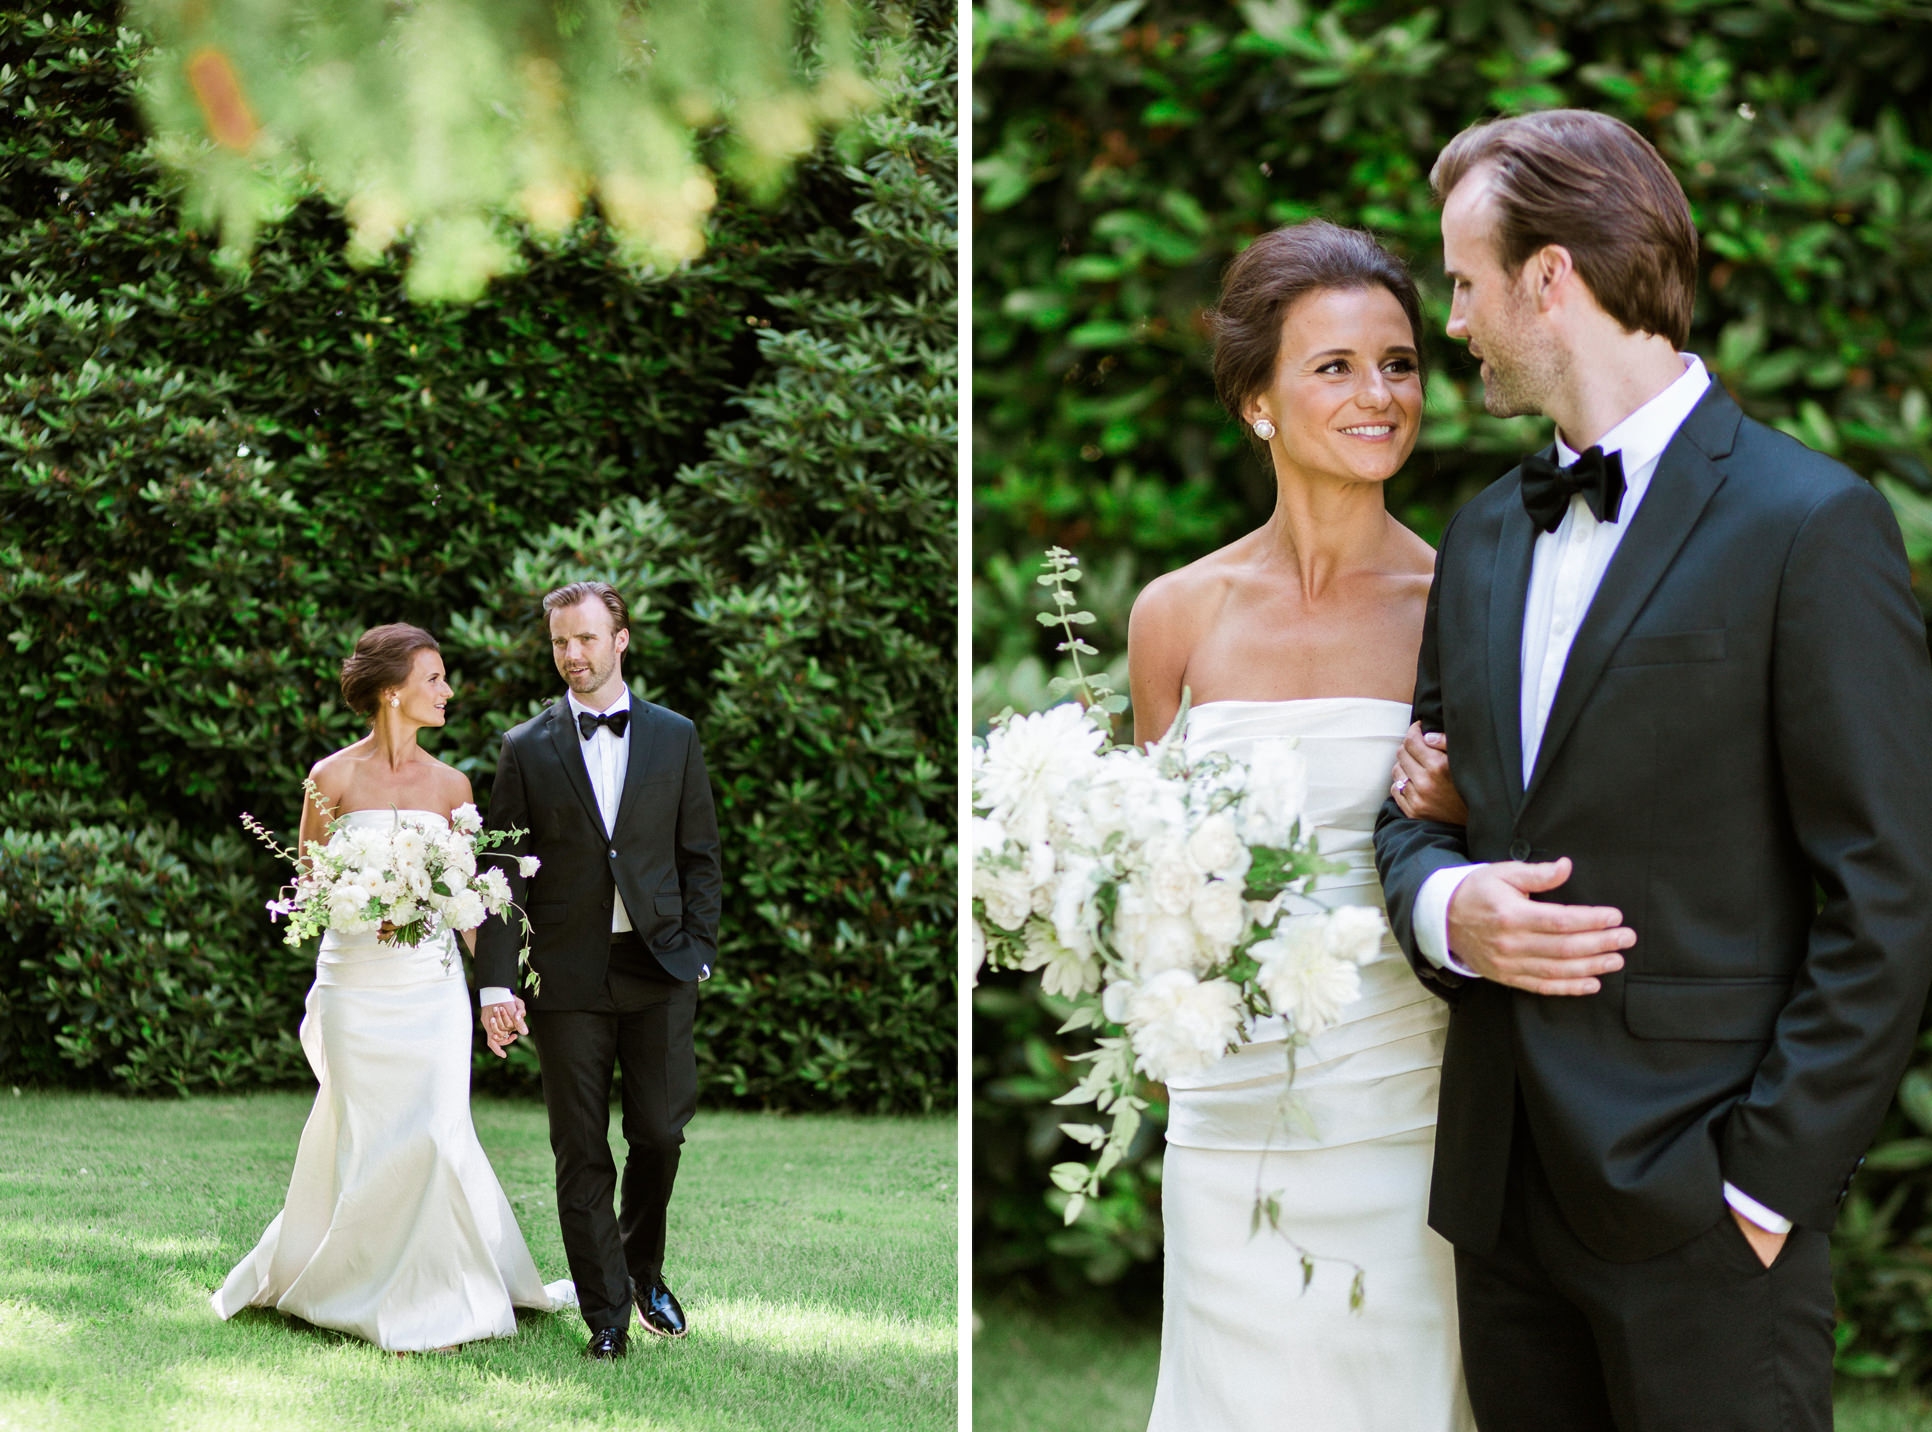 timeless elegant wedding at cecil green park house camilla